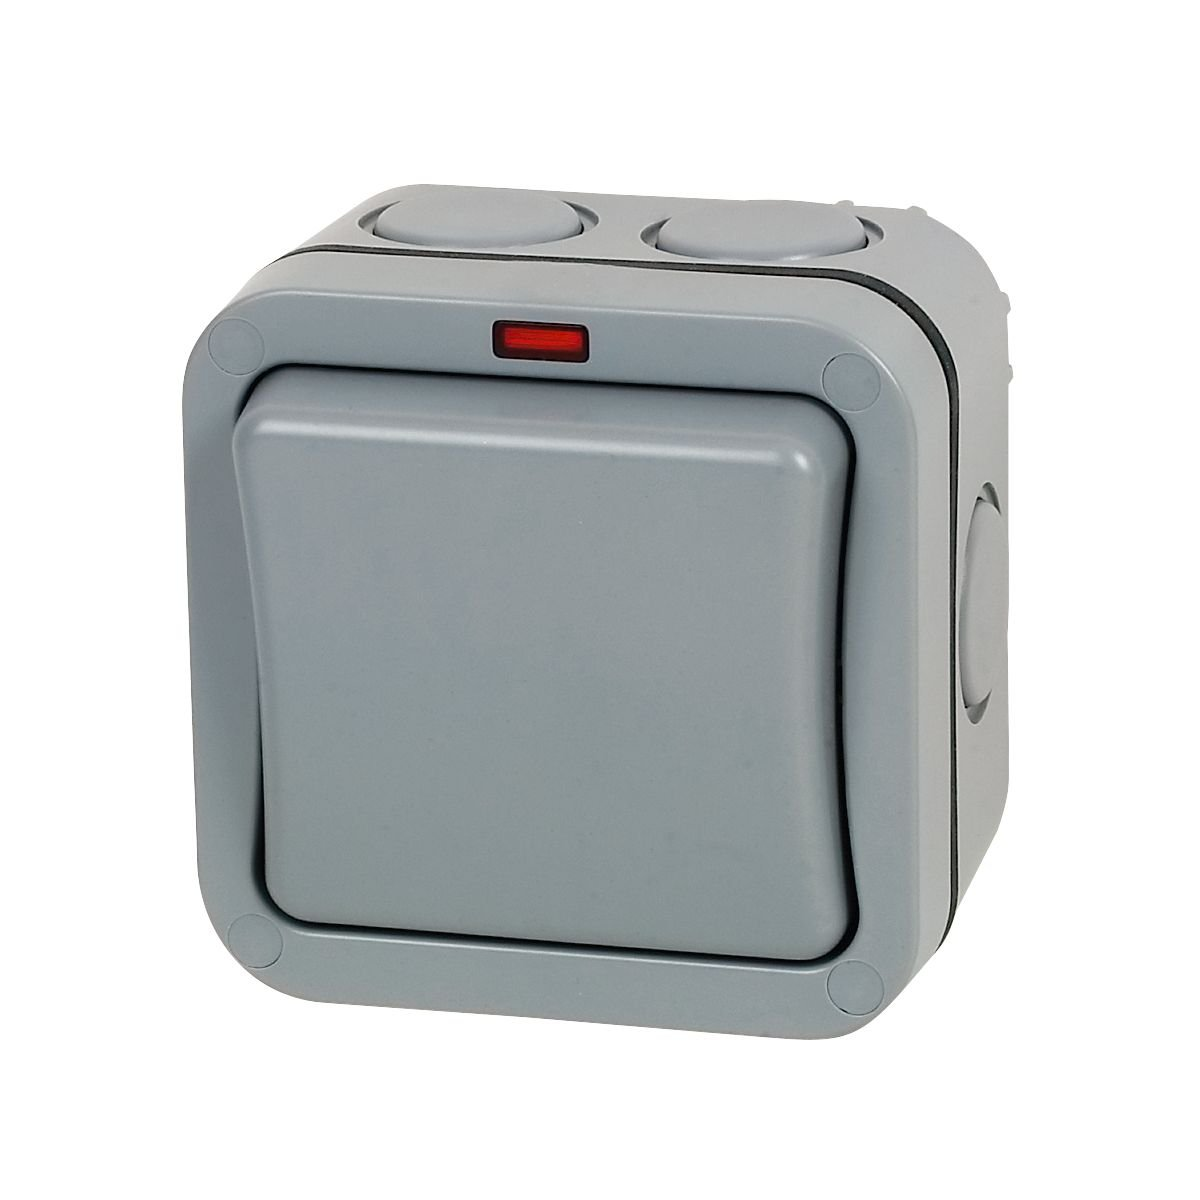 2 GANG IP66 WEATHERPROOF SWITCHES OUTDOOR 20A DOUBLE POLE WP42 1 BG STORM WP30